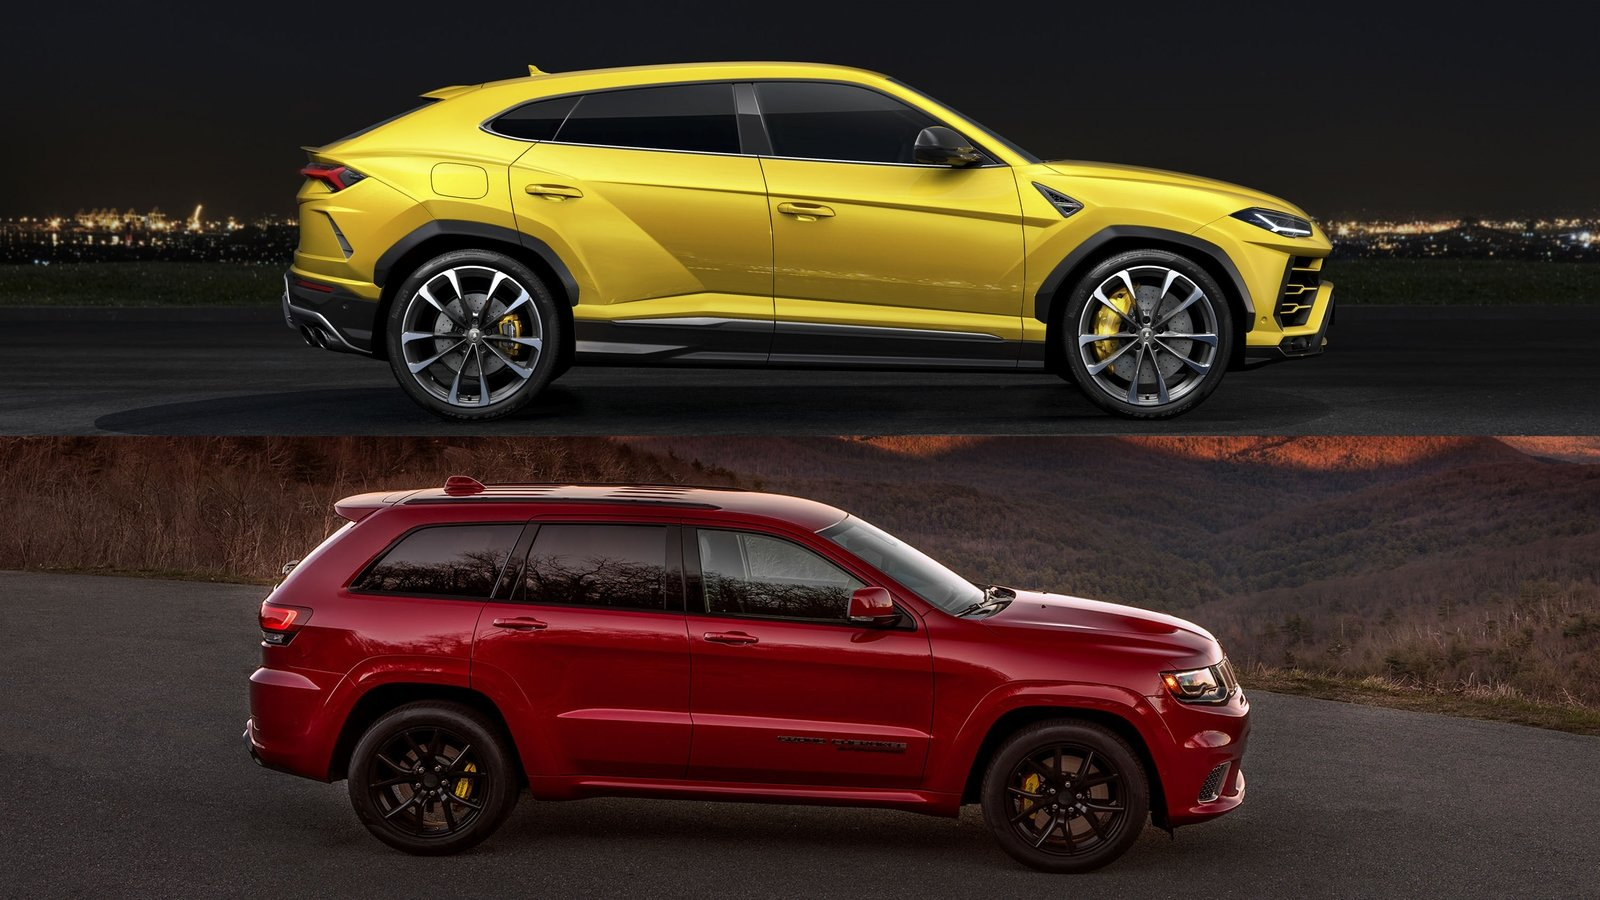 Table For Two Comparing The Lamborghini Urus And The Jeep